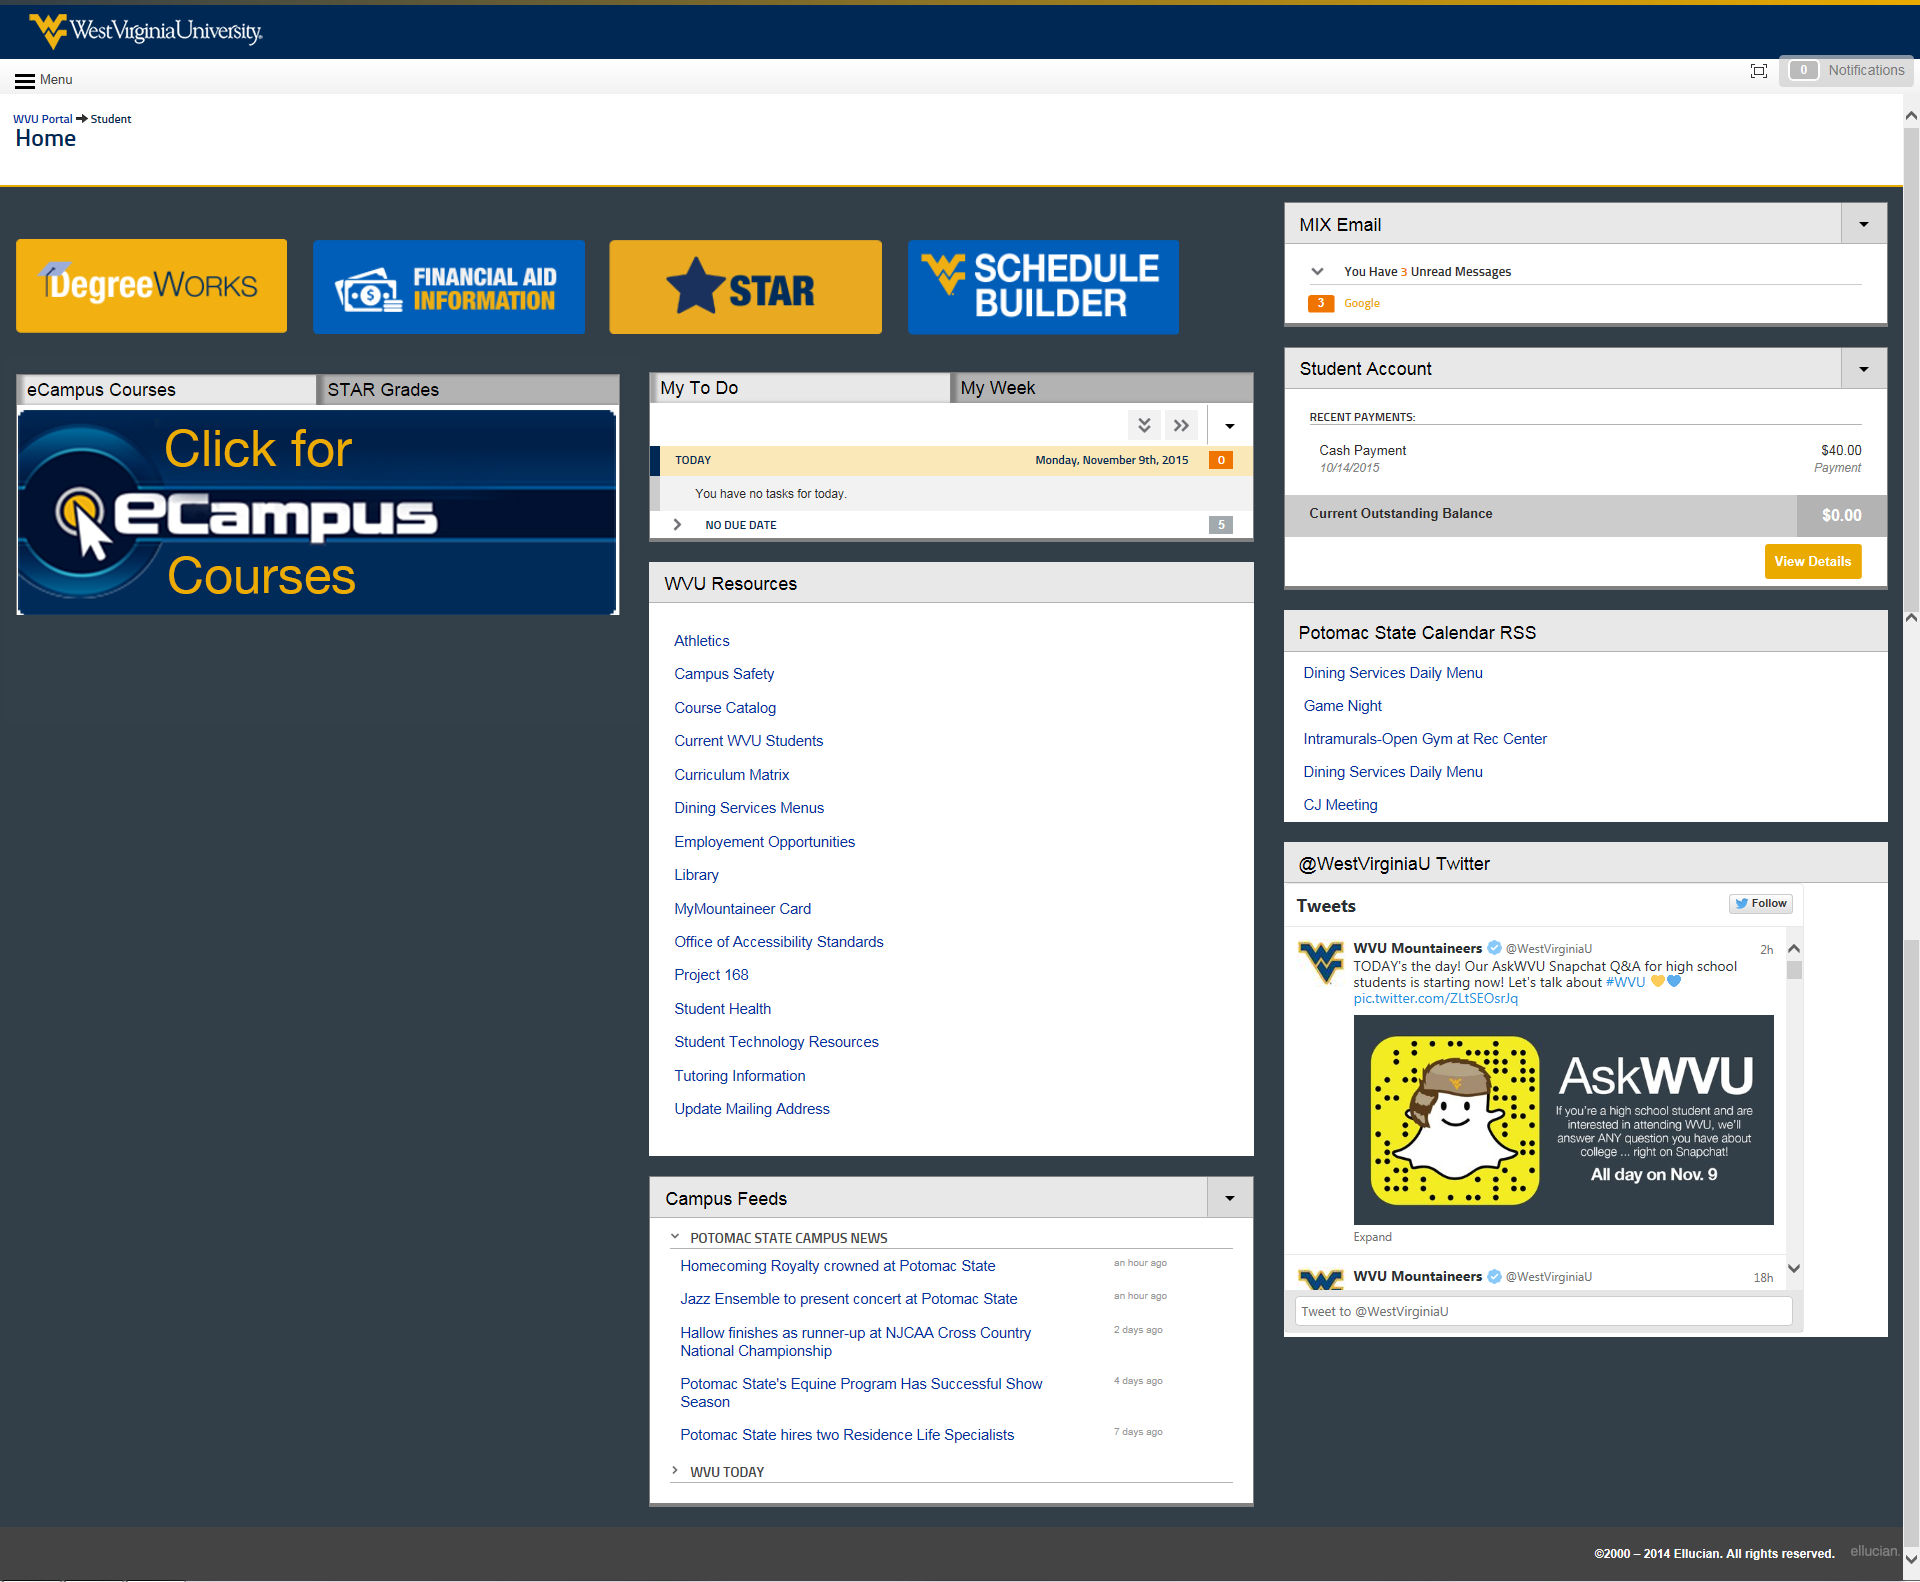 Potomac State College view of the student portal